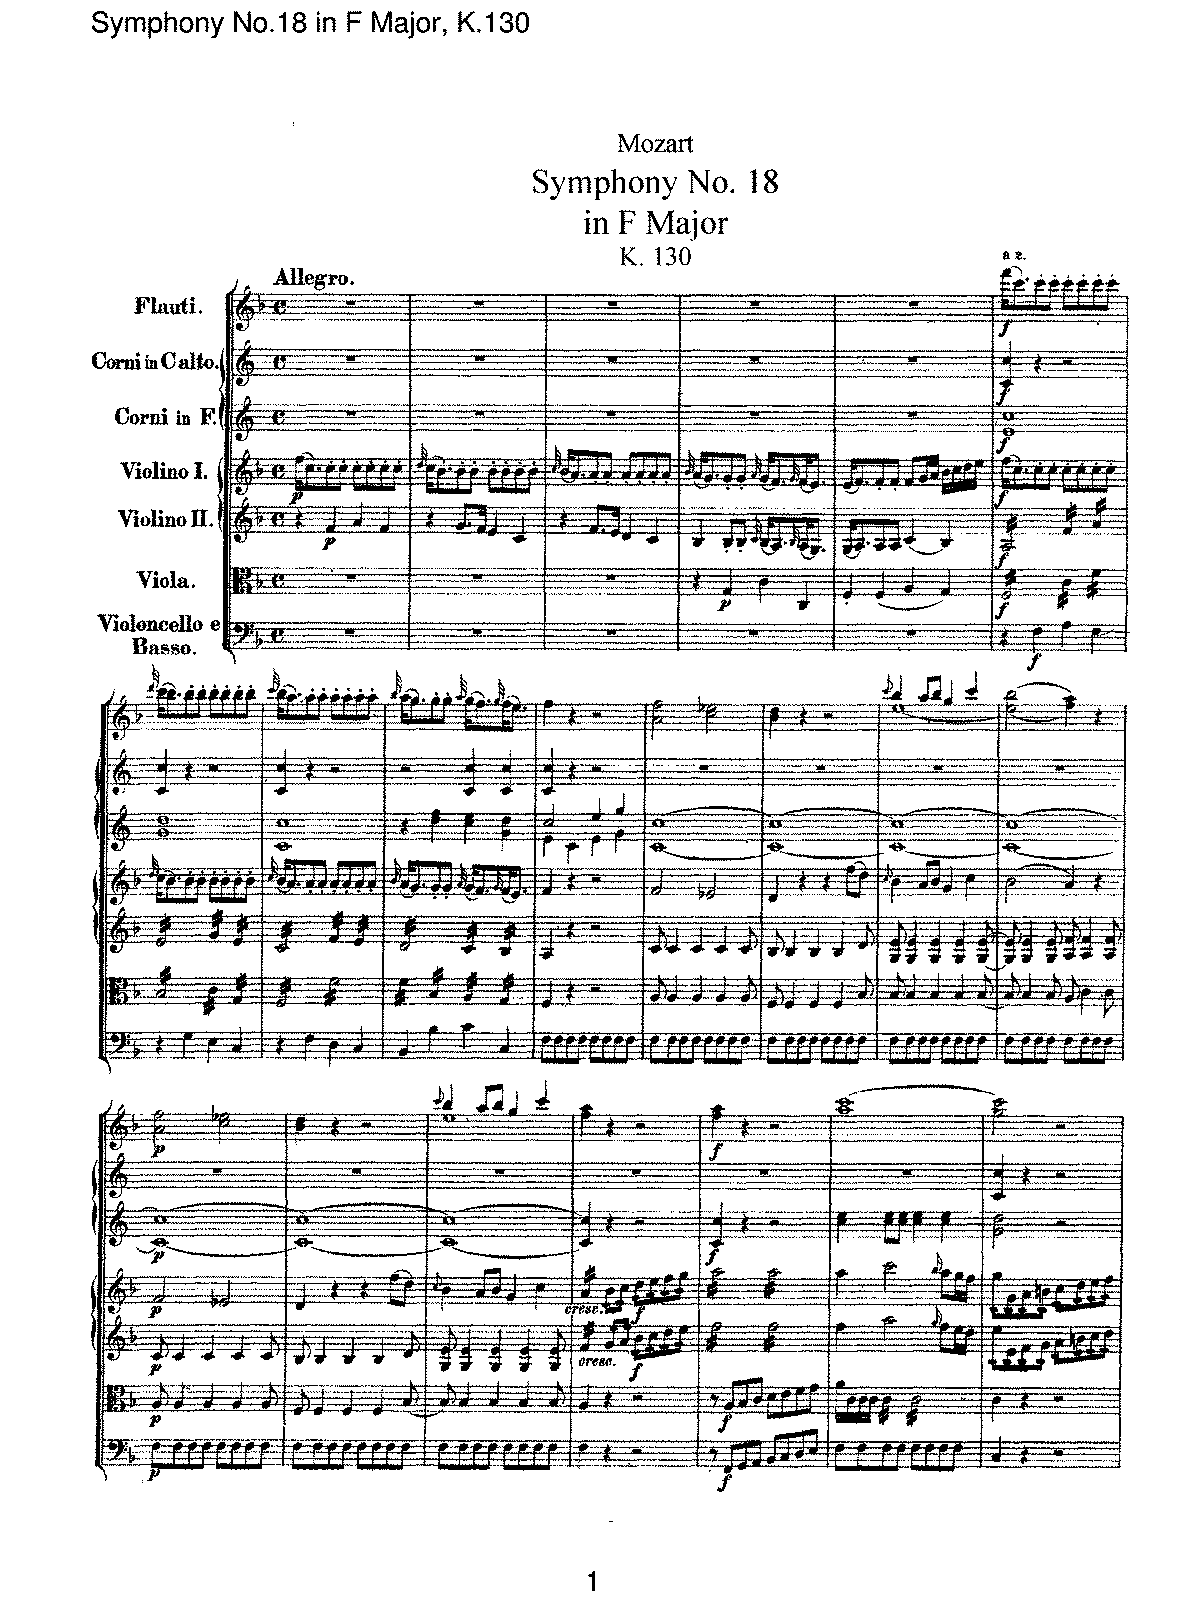 Mozart - Symphony No 18 in F Major, K130.pdf